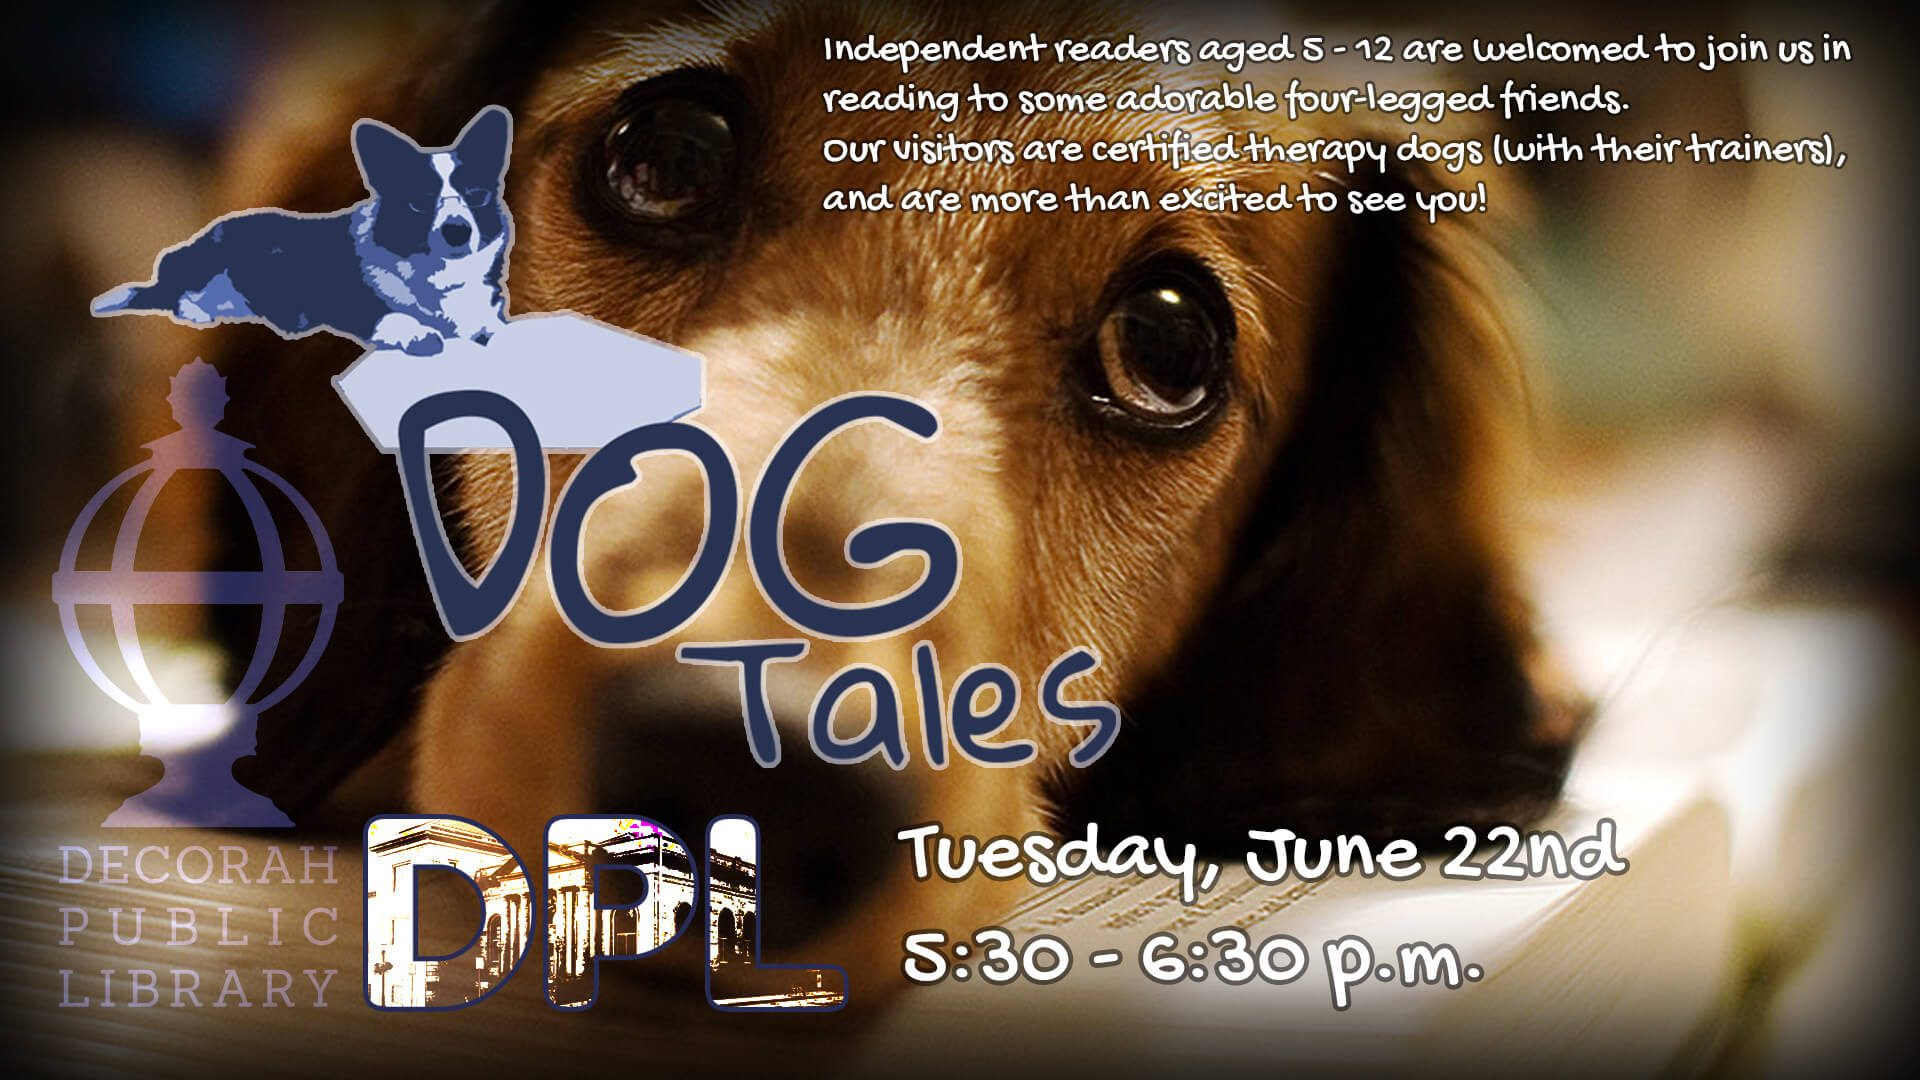 Dog Tales- Tuesday, June 22nd 5:30 - 6:30 PM